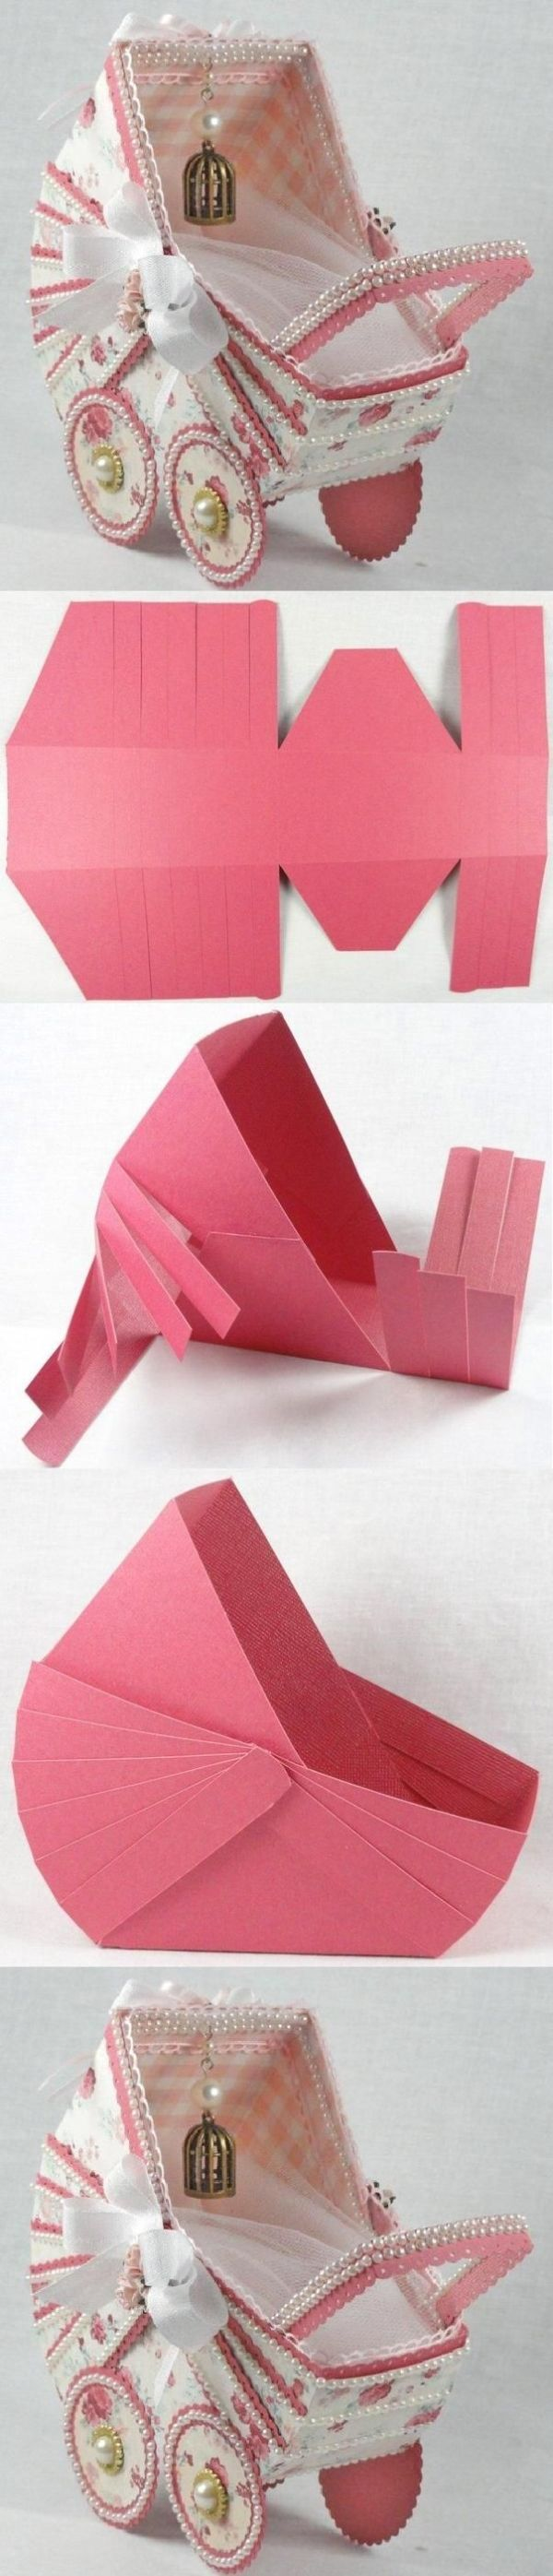 1375 Best 3d Art Images On Pinterest Card Crafts Cards And Papercraft